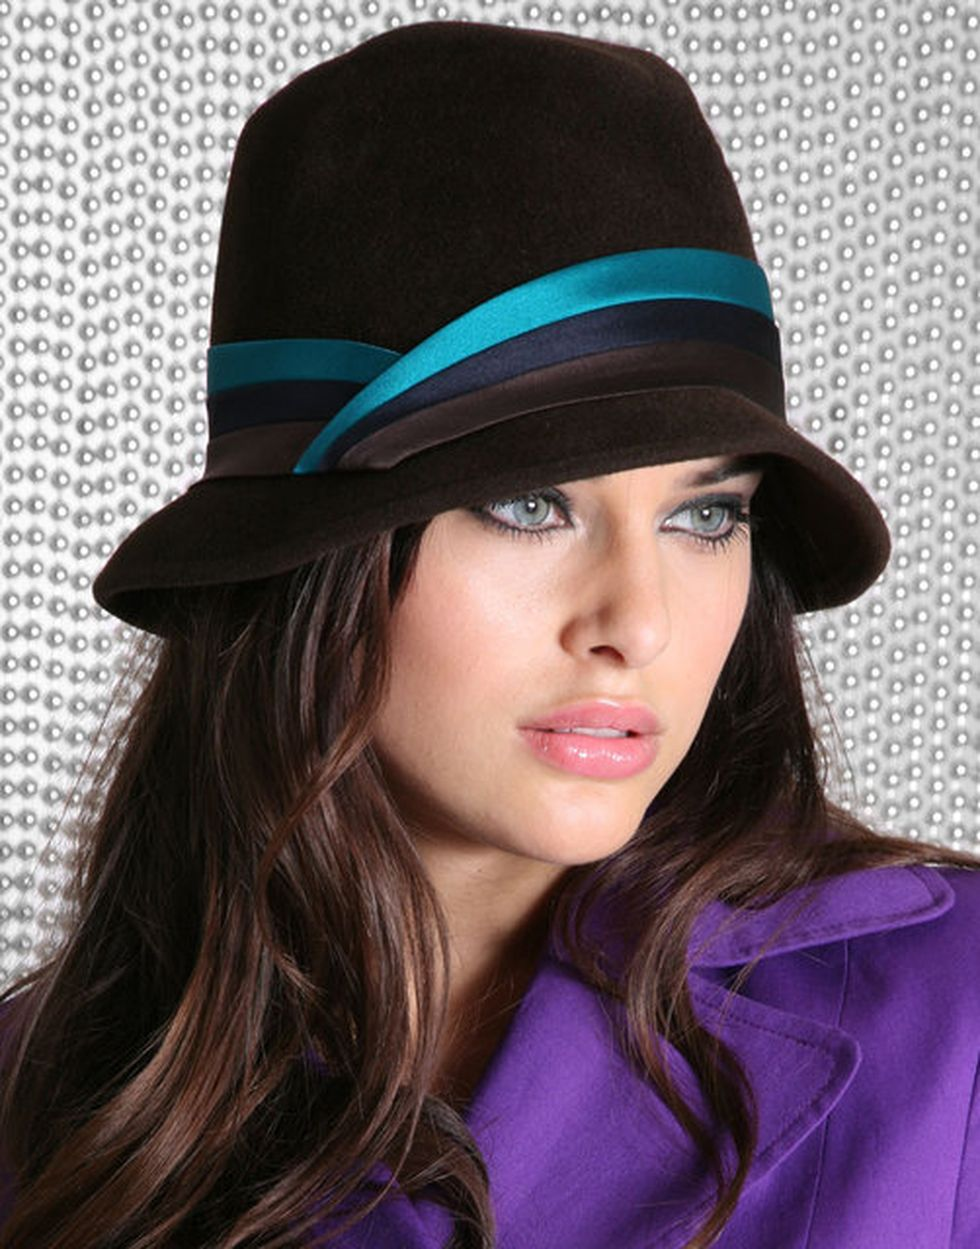 Fashionable Women Hats For Winter And Snow Outfits 59 -6142